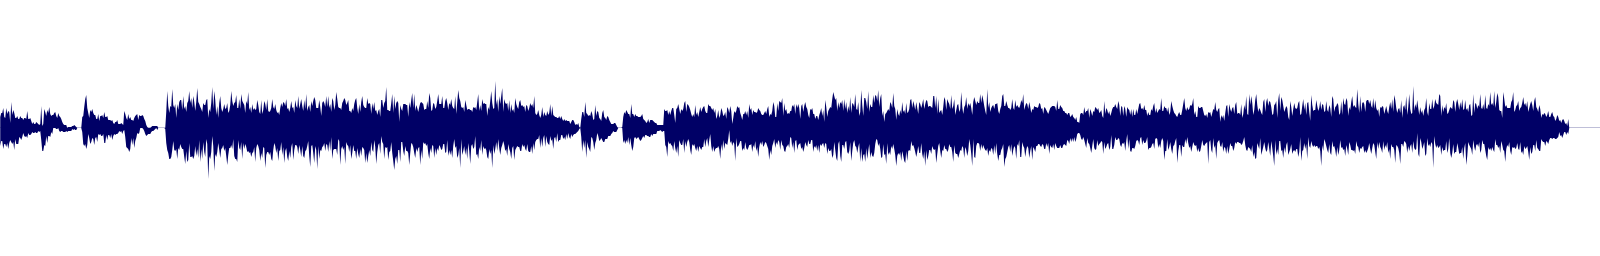 waveform of track #131682